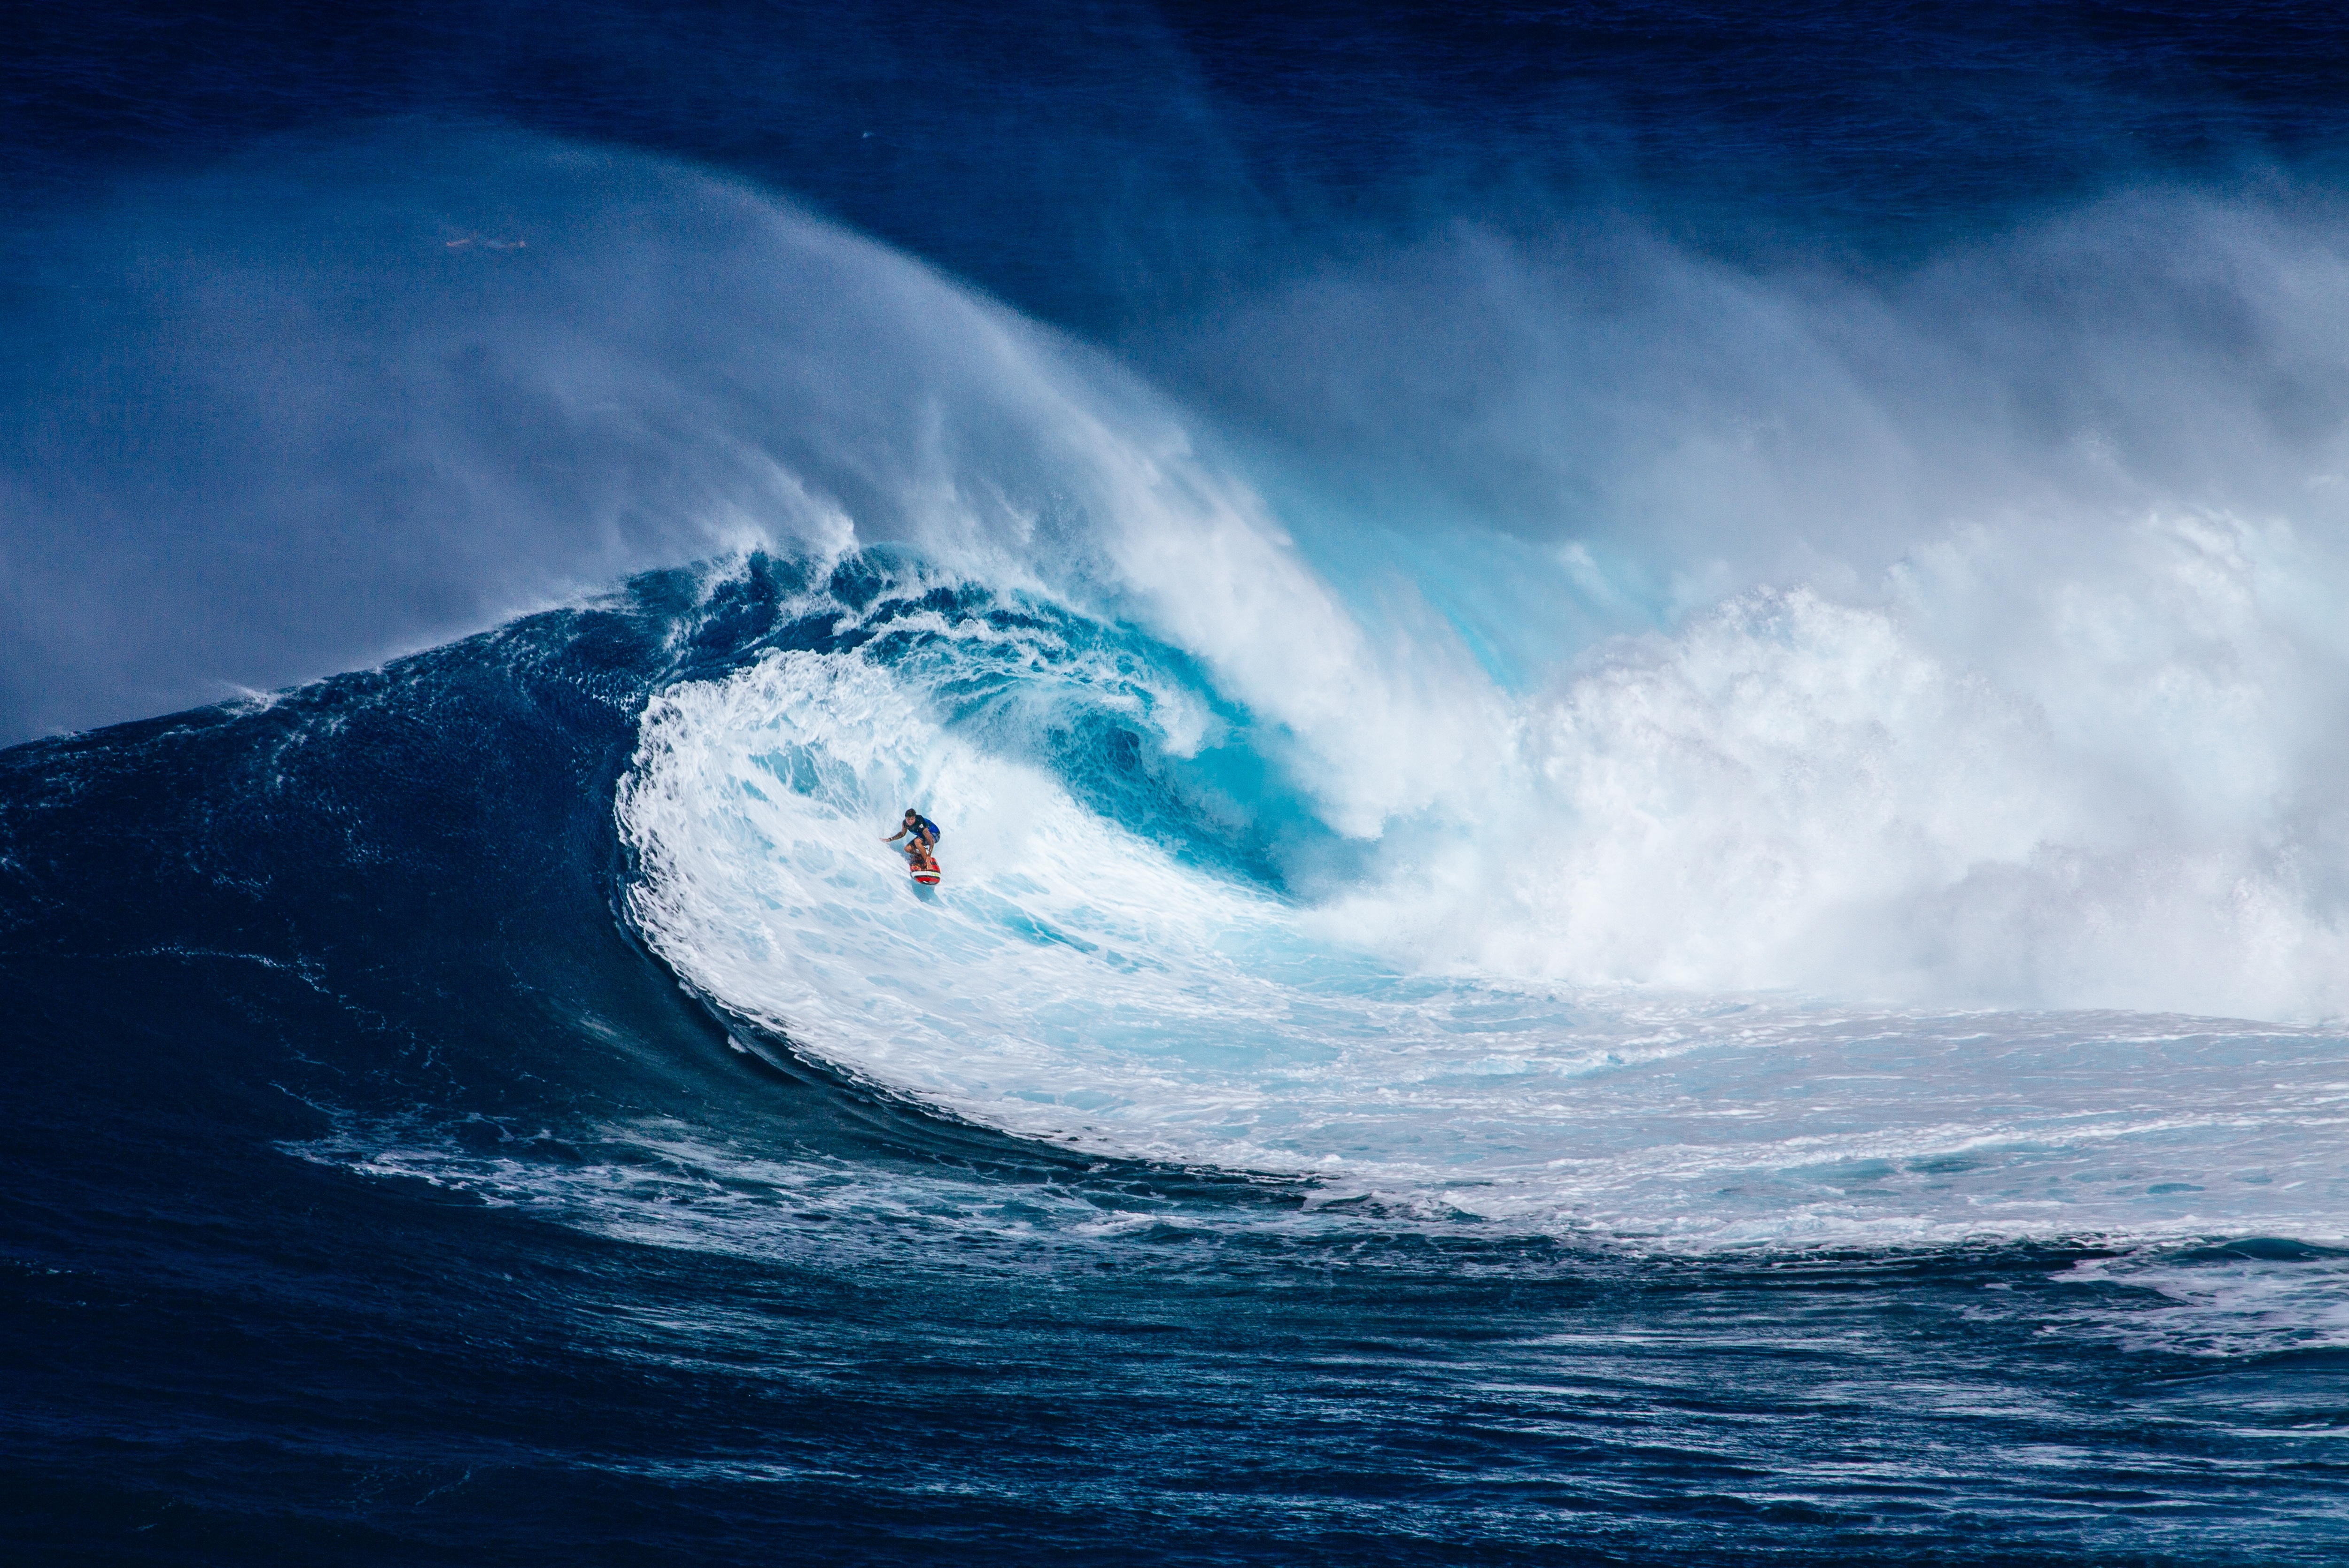 Riding The Waves: A Method for Approaching Life From A Place of Calm